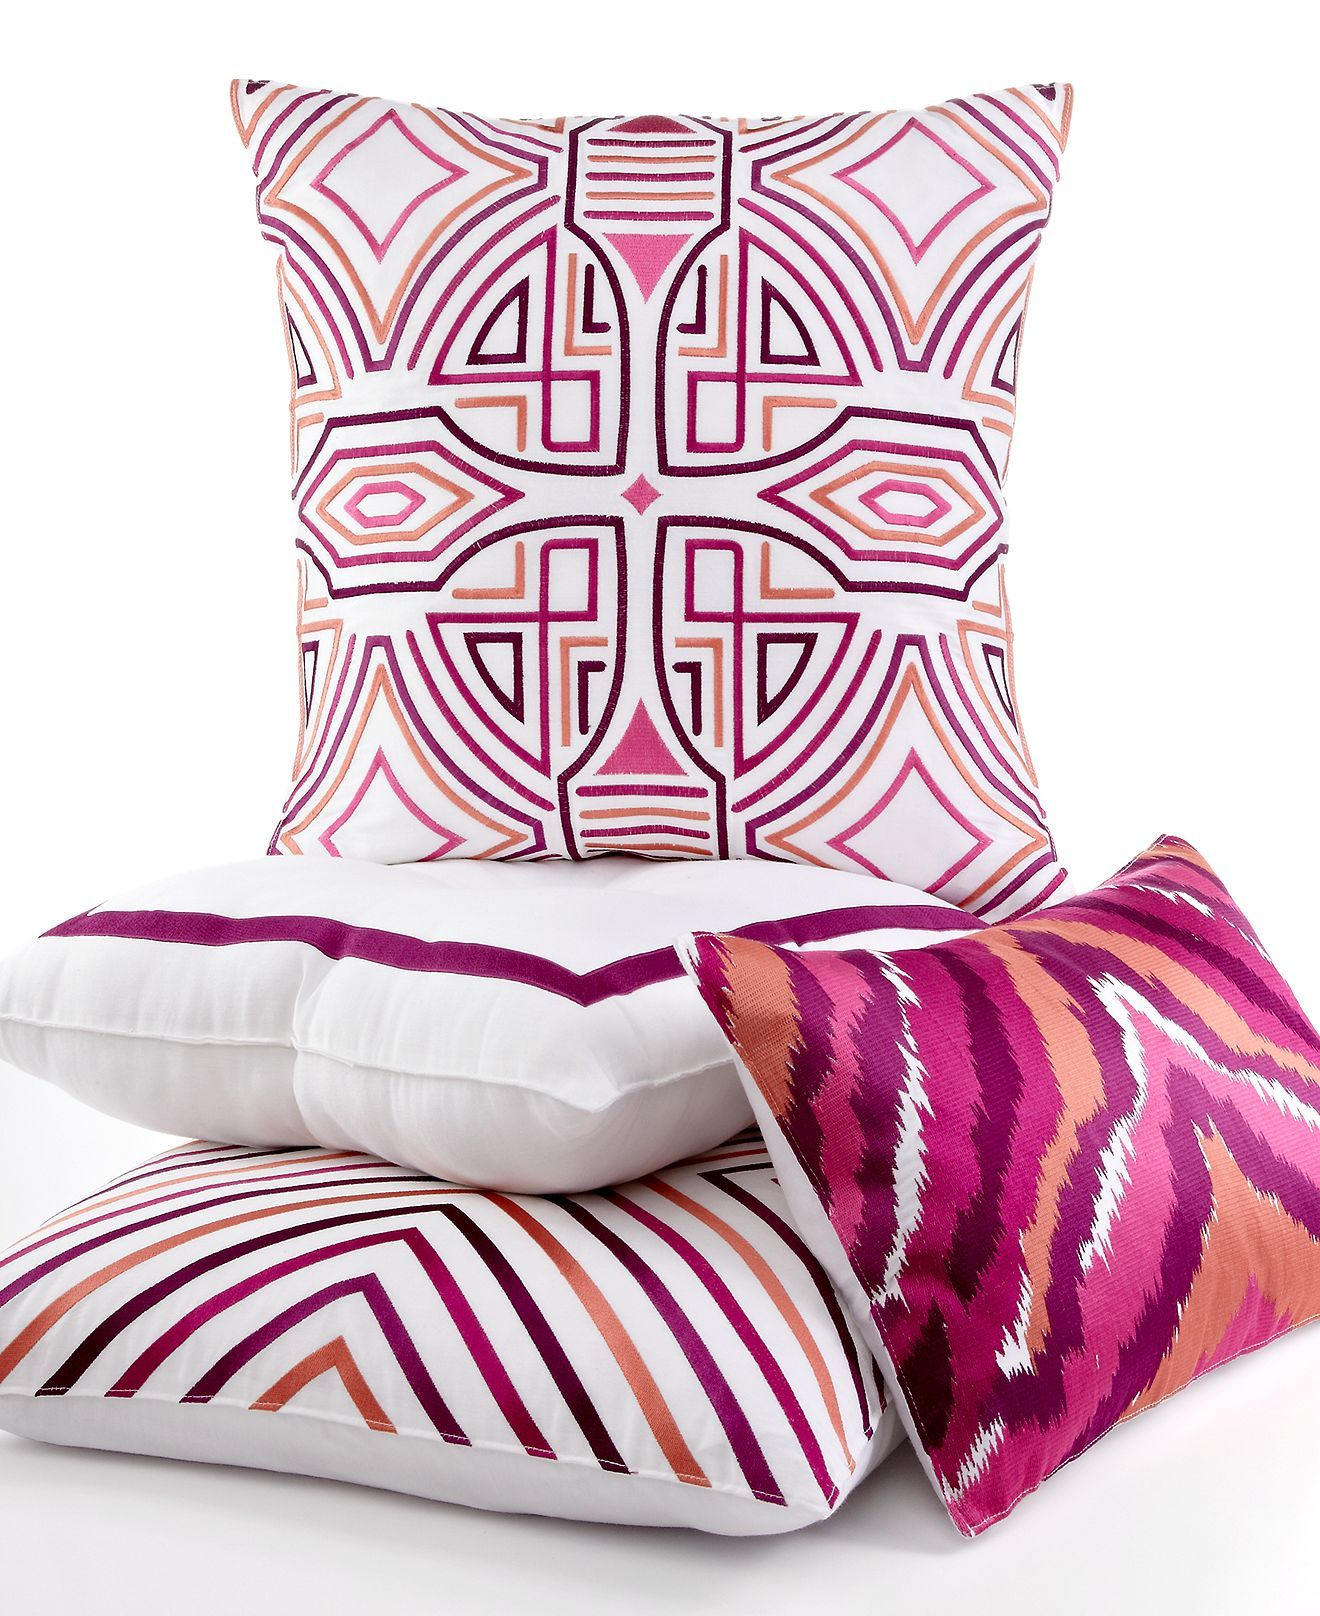 Trina Turk Bedding Ikat Purple Decorative Pillows Purple Decorative Pillows Trina Turk Bedding Decorative Pillows